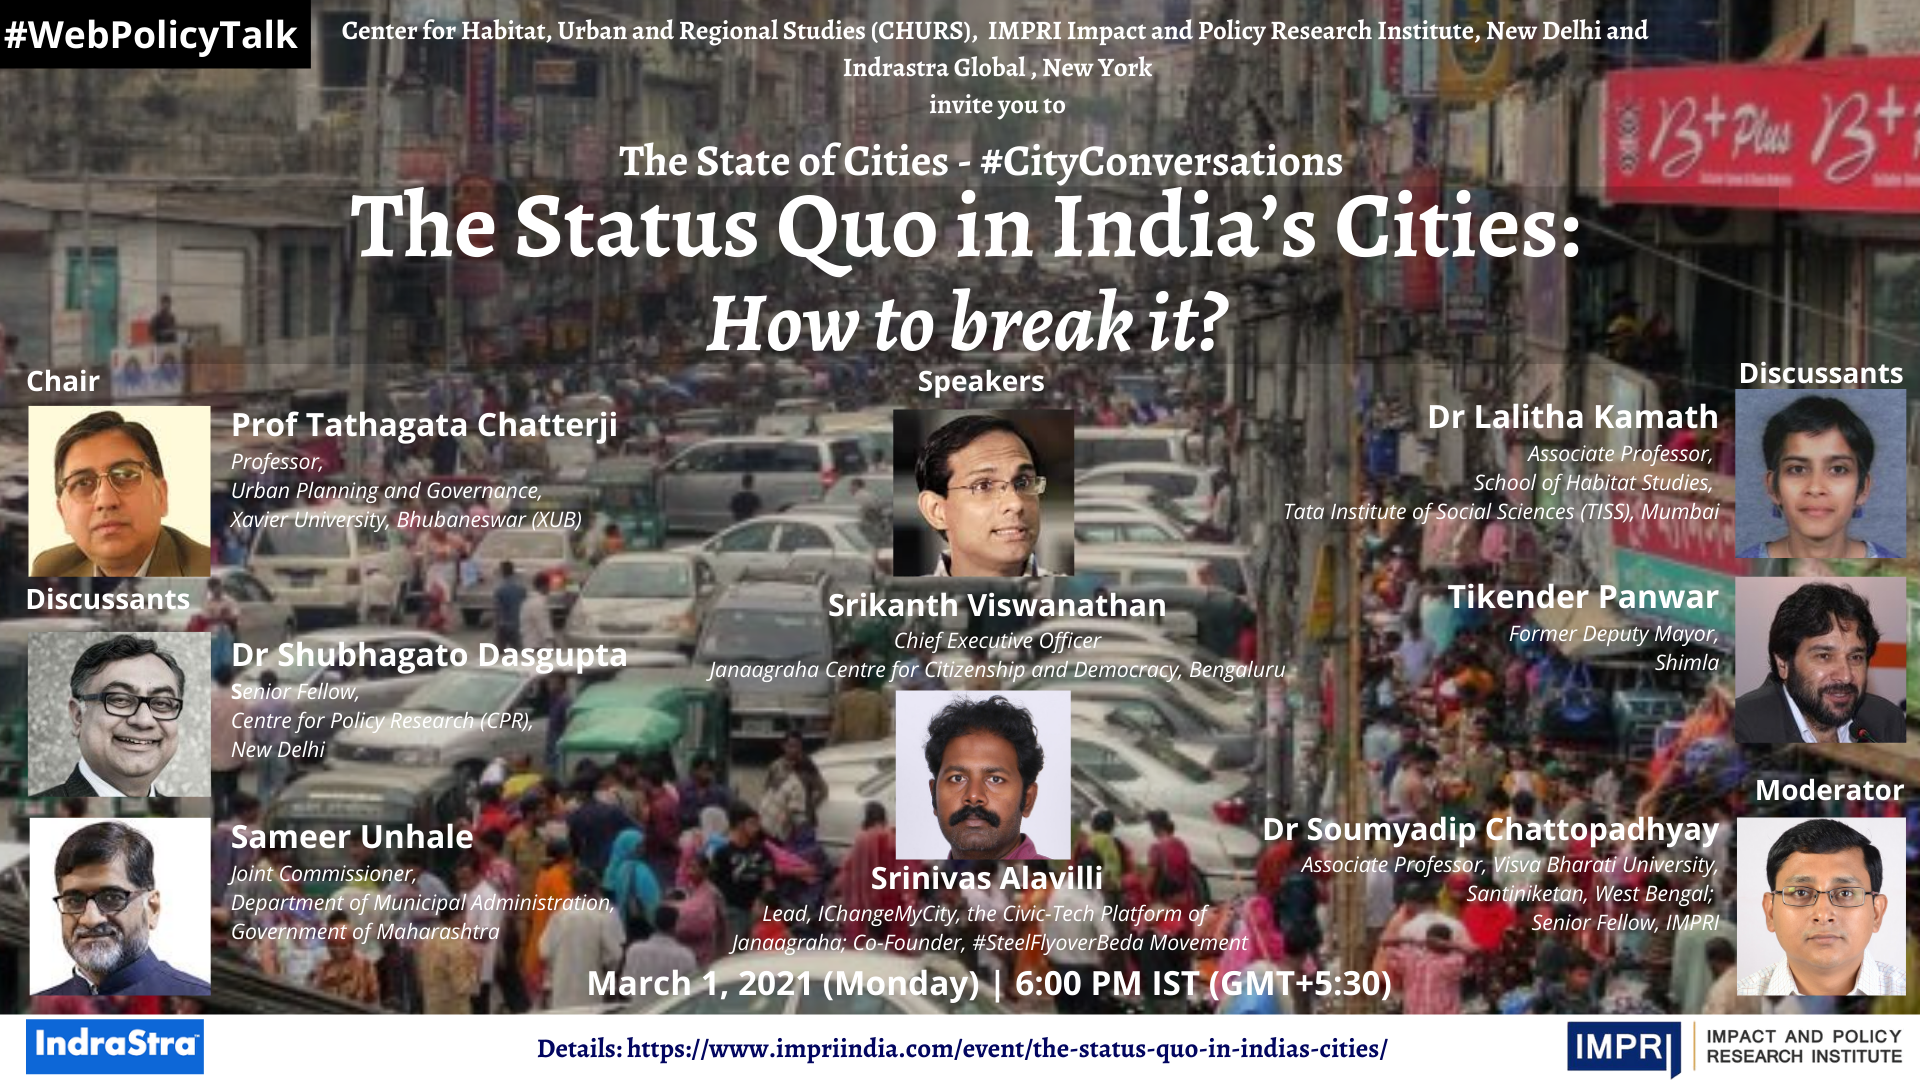 The Status Quo in India's Cities: How to break it?